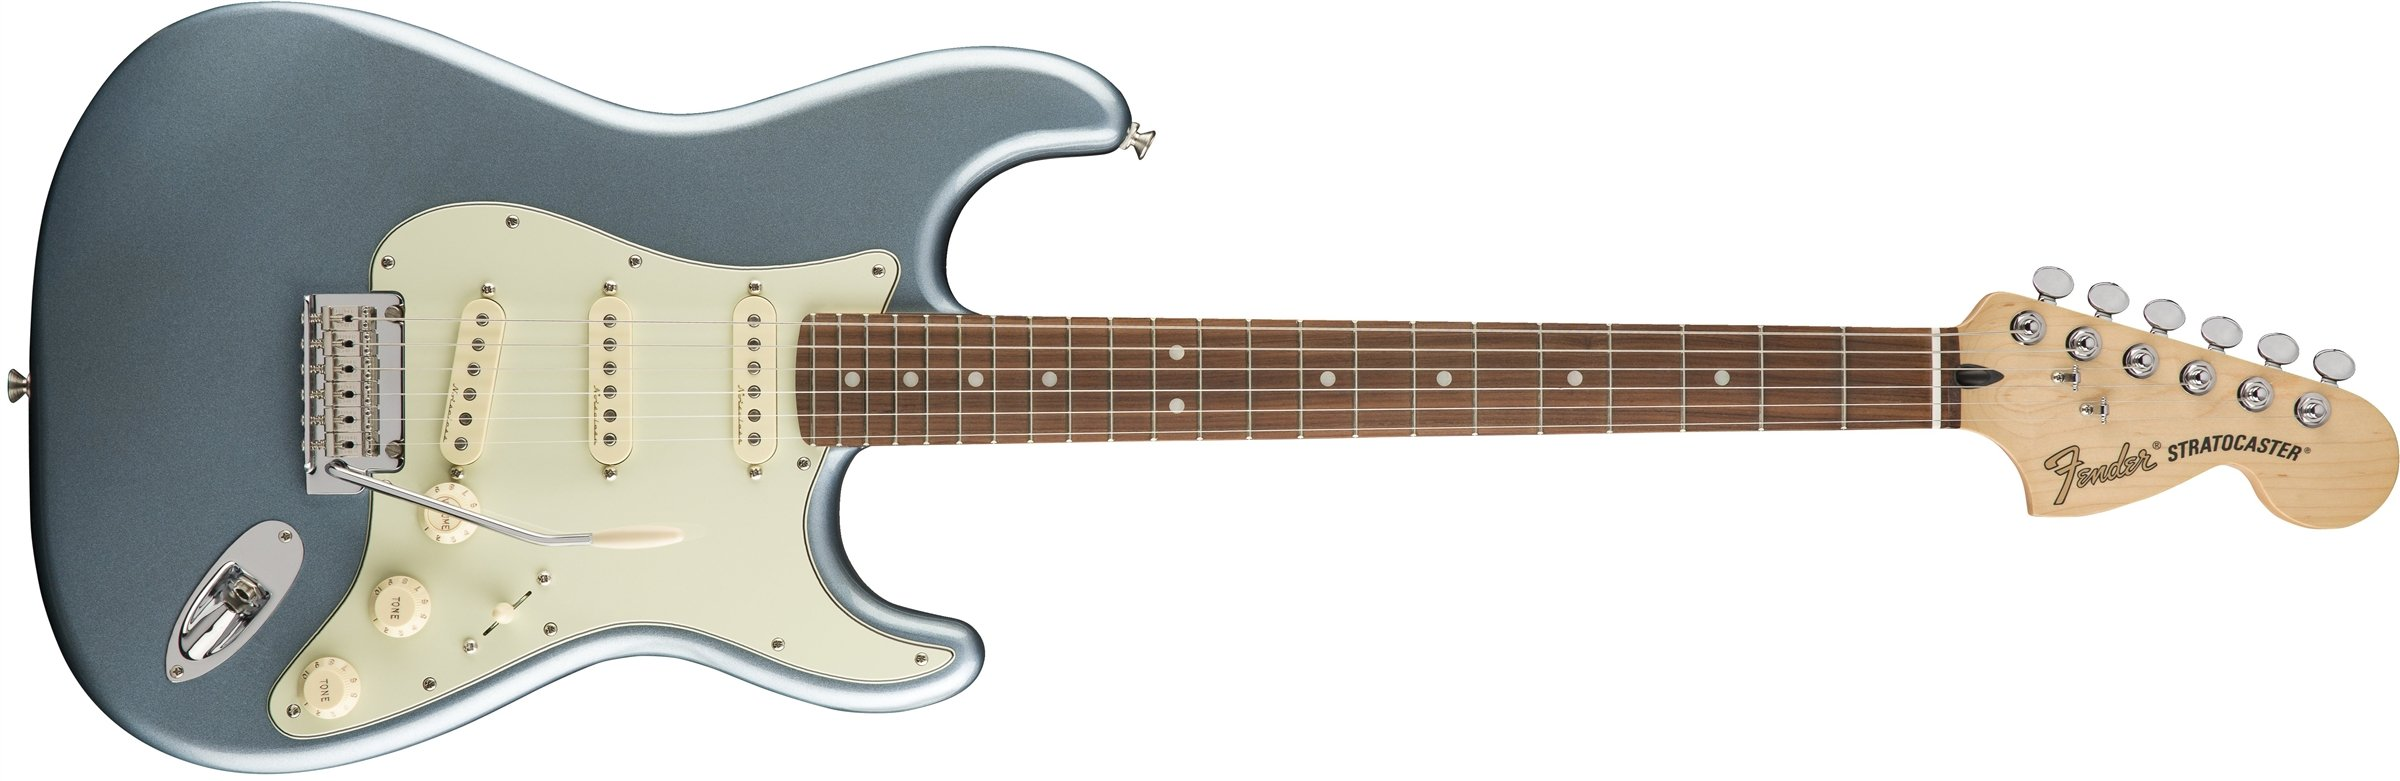 Cheap Fender 6 String Solid-Body Electric Guitar Mystic Ice Blue (0147300362) Black Friday & Cyber Monday 2019